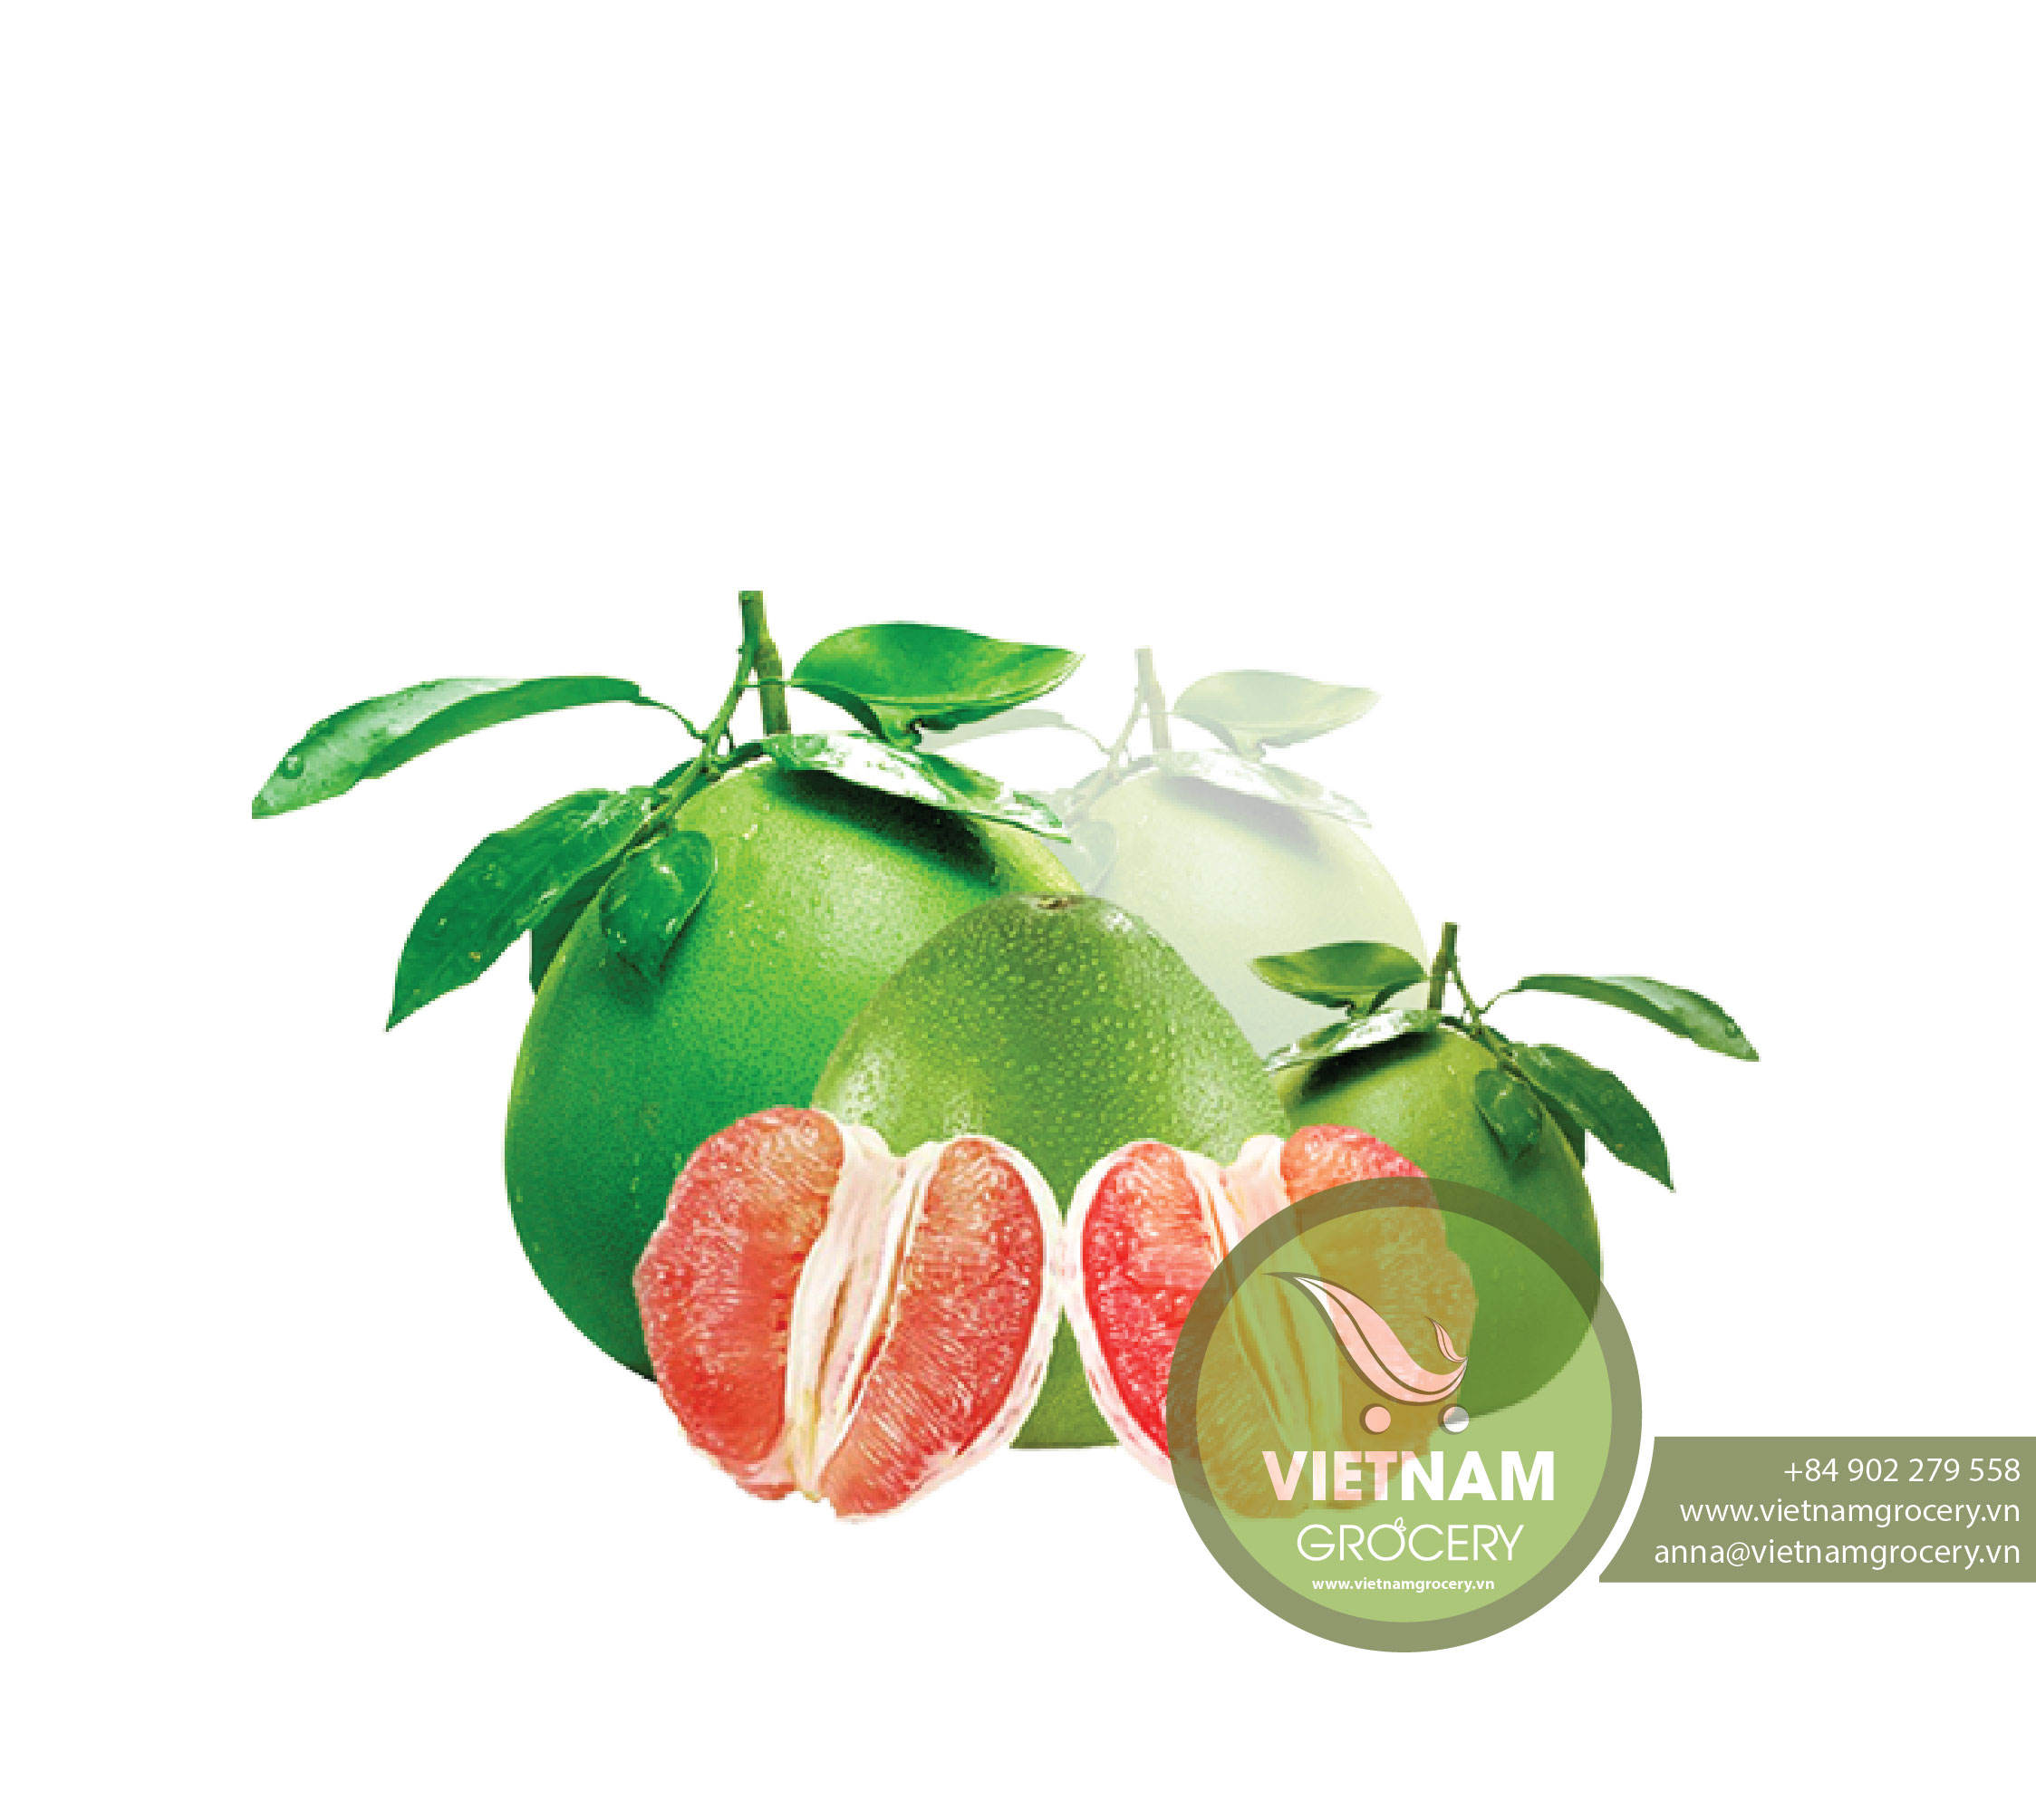 Vietnam Global GAP Green Skin and Pink Flesh Pomelo